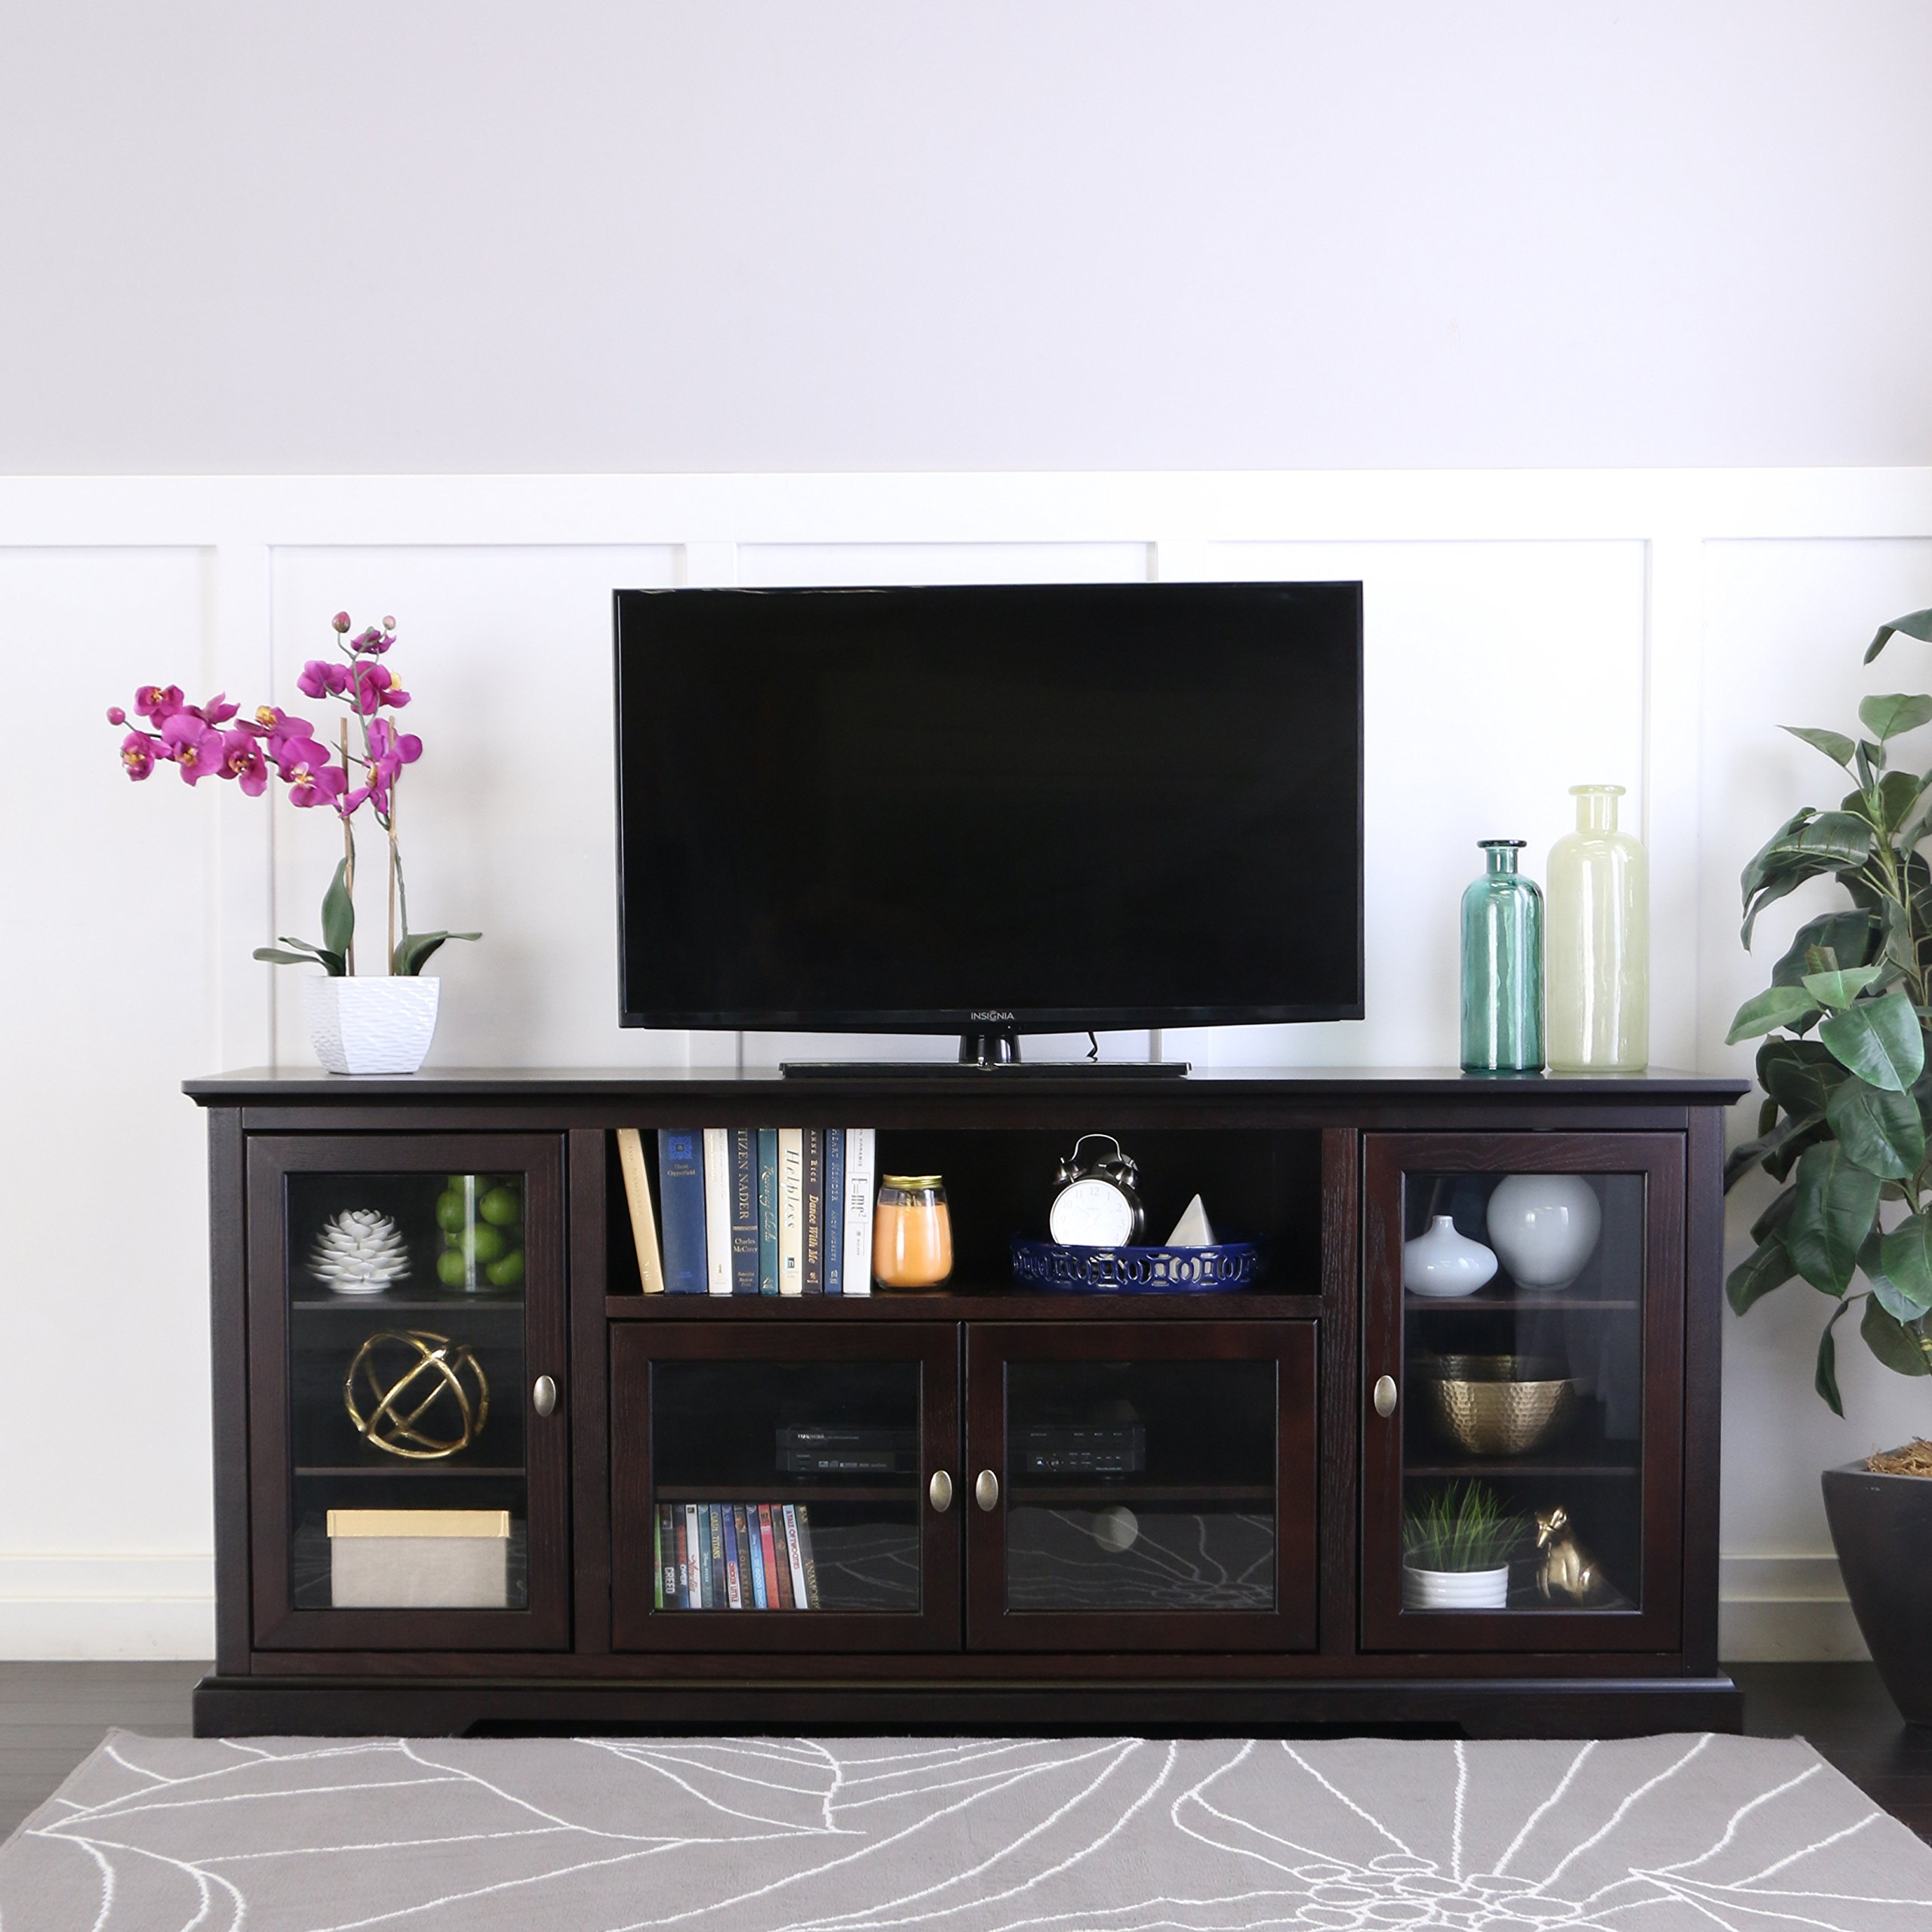 WE Furniture 70'' Highboy Style Wood TV Stand Console, Espresso by WE Furniture